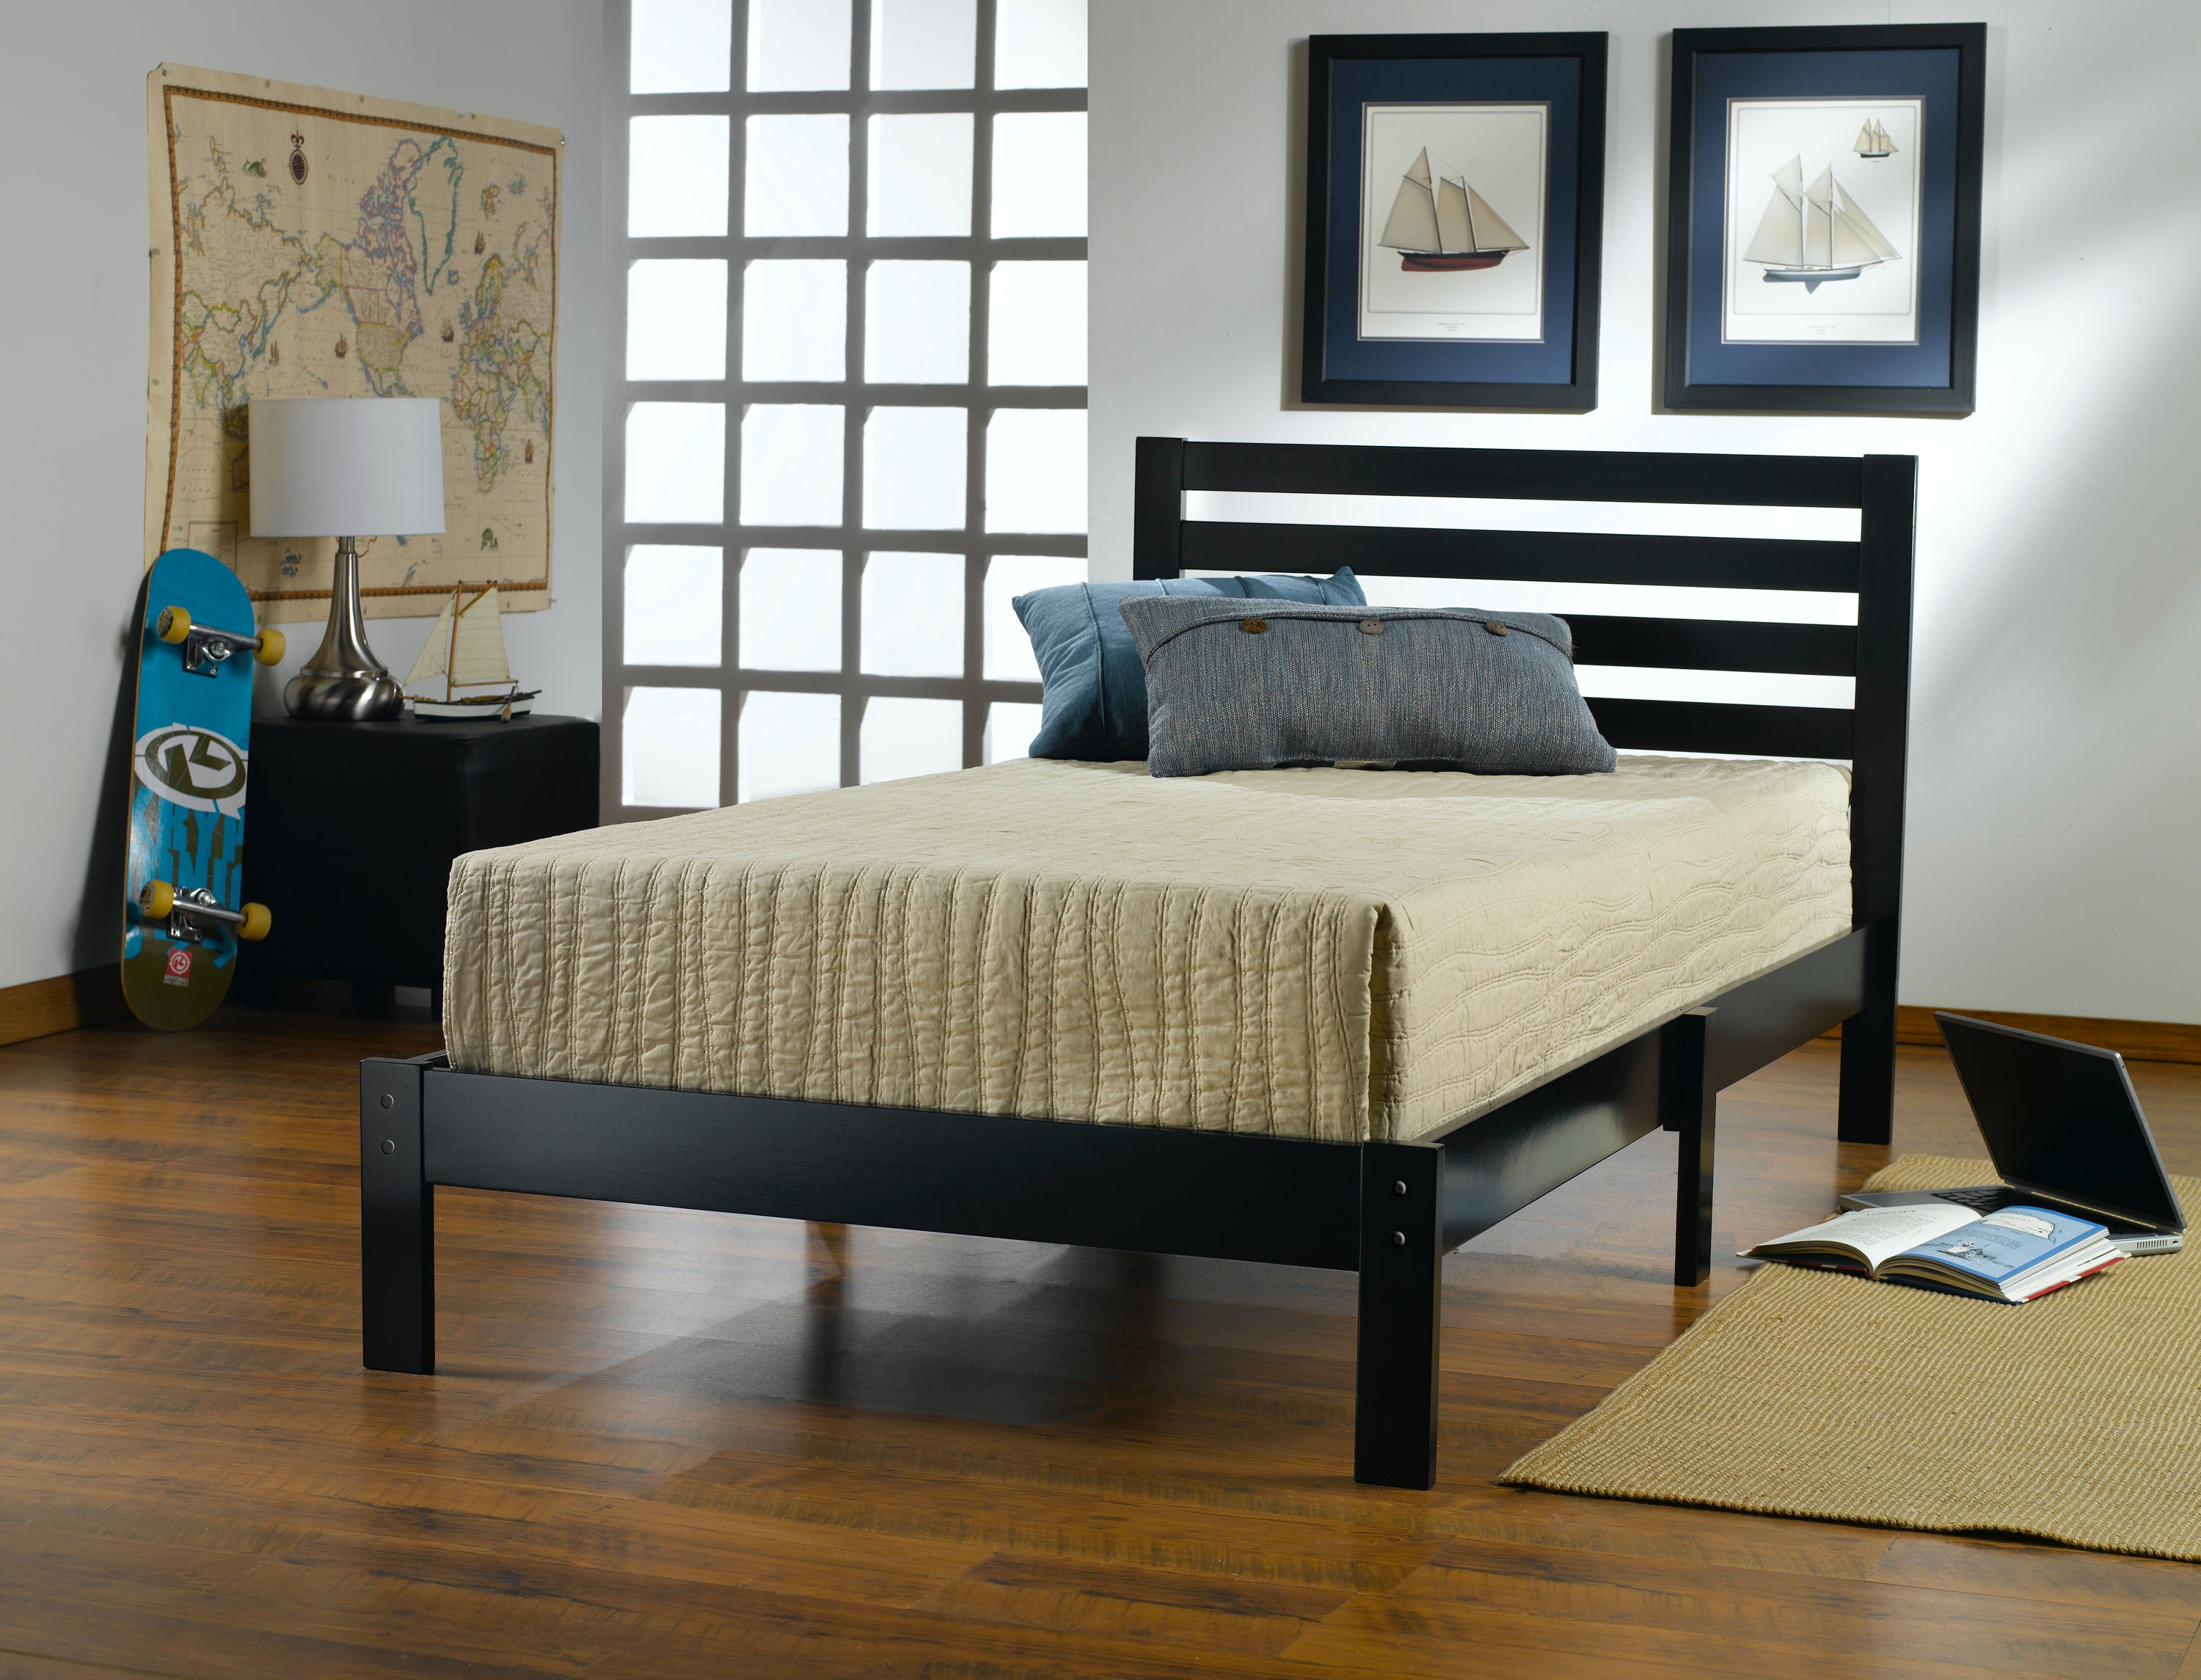 Hillsdale Furniture Youth Aiden Twin Bed Set 1757 330   Smith Village Home  Furniture   Jacobus And York, PA